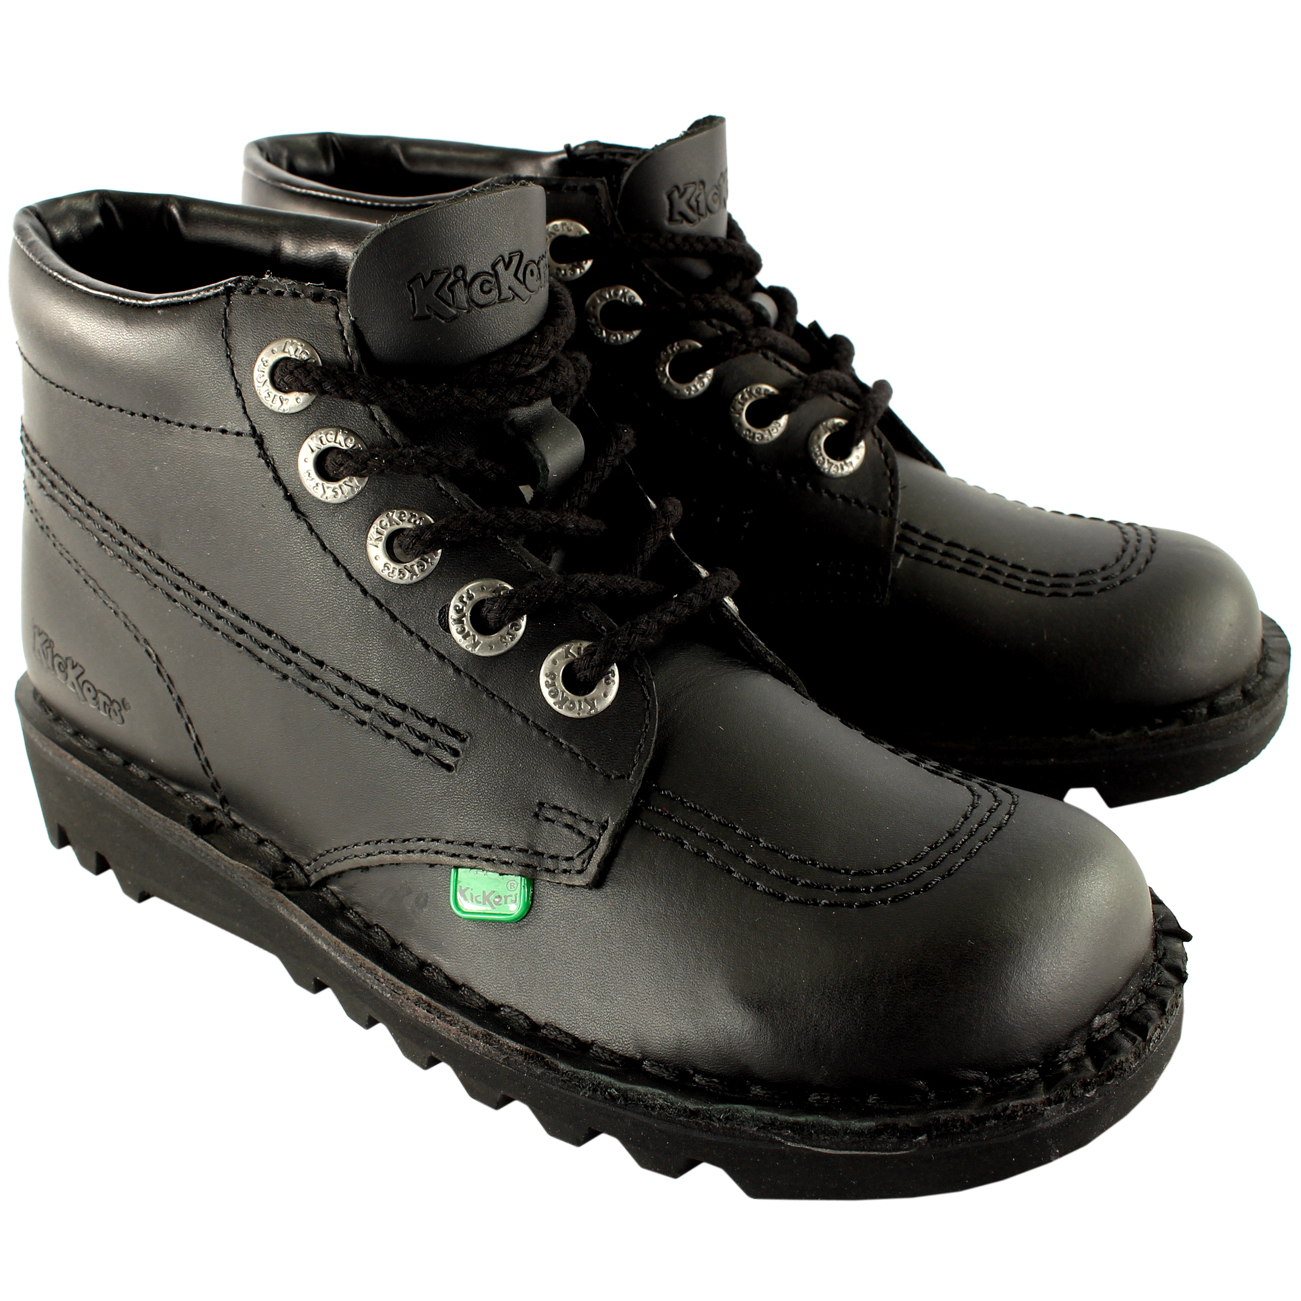 Mens Kickers Kick Hi M Core Leather Classic Office Work Boots ...